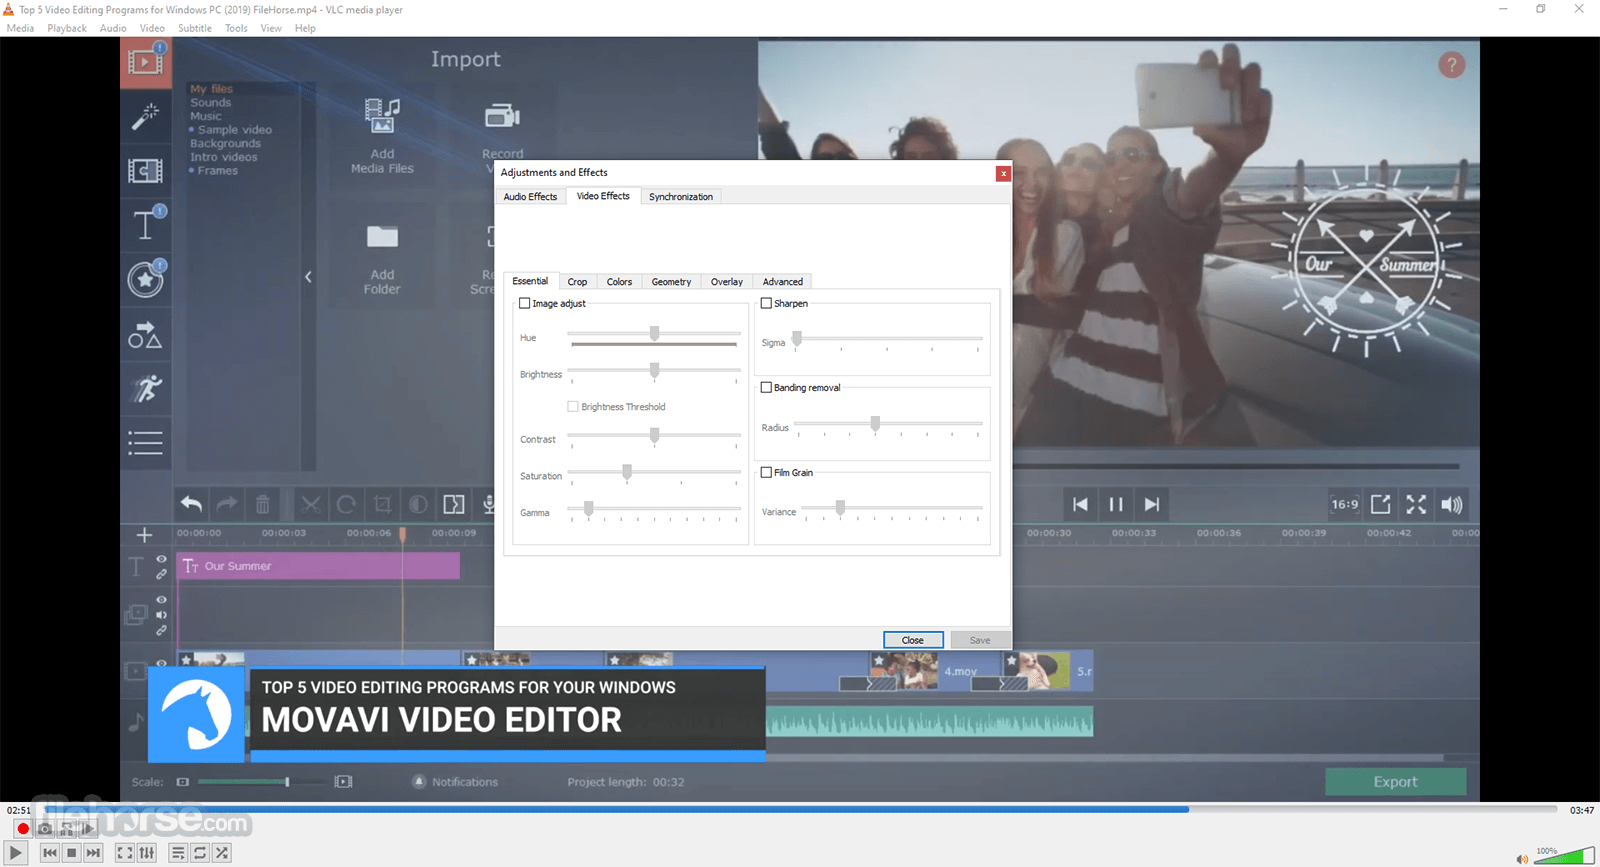 VLC Media Player 2.1.5 (32-bit) Screenshot 4